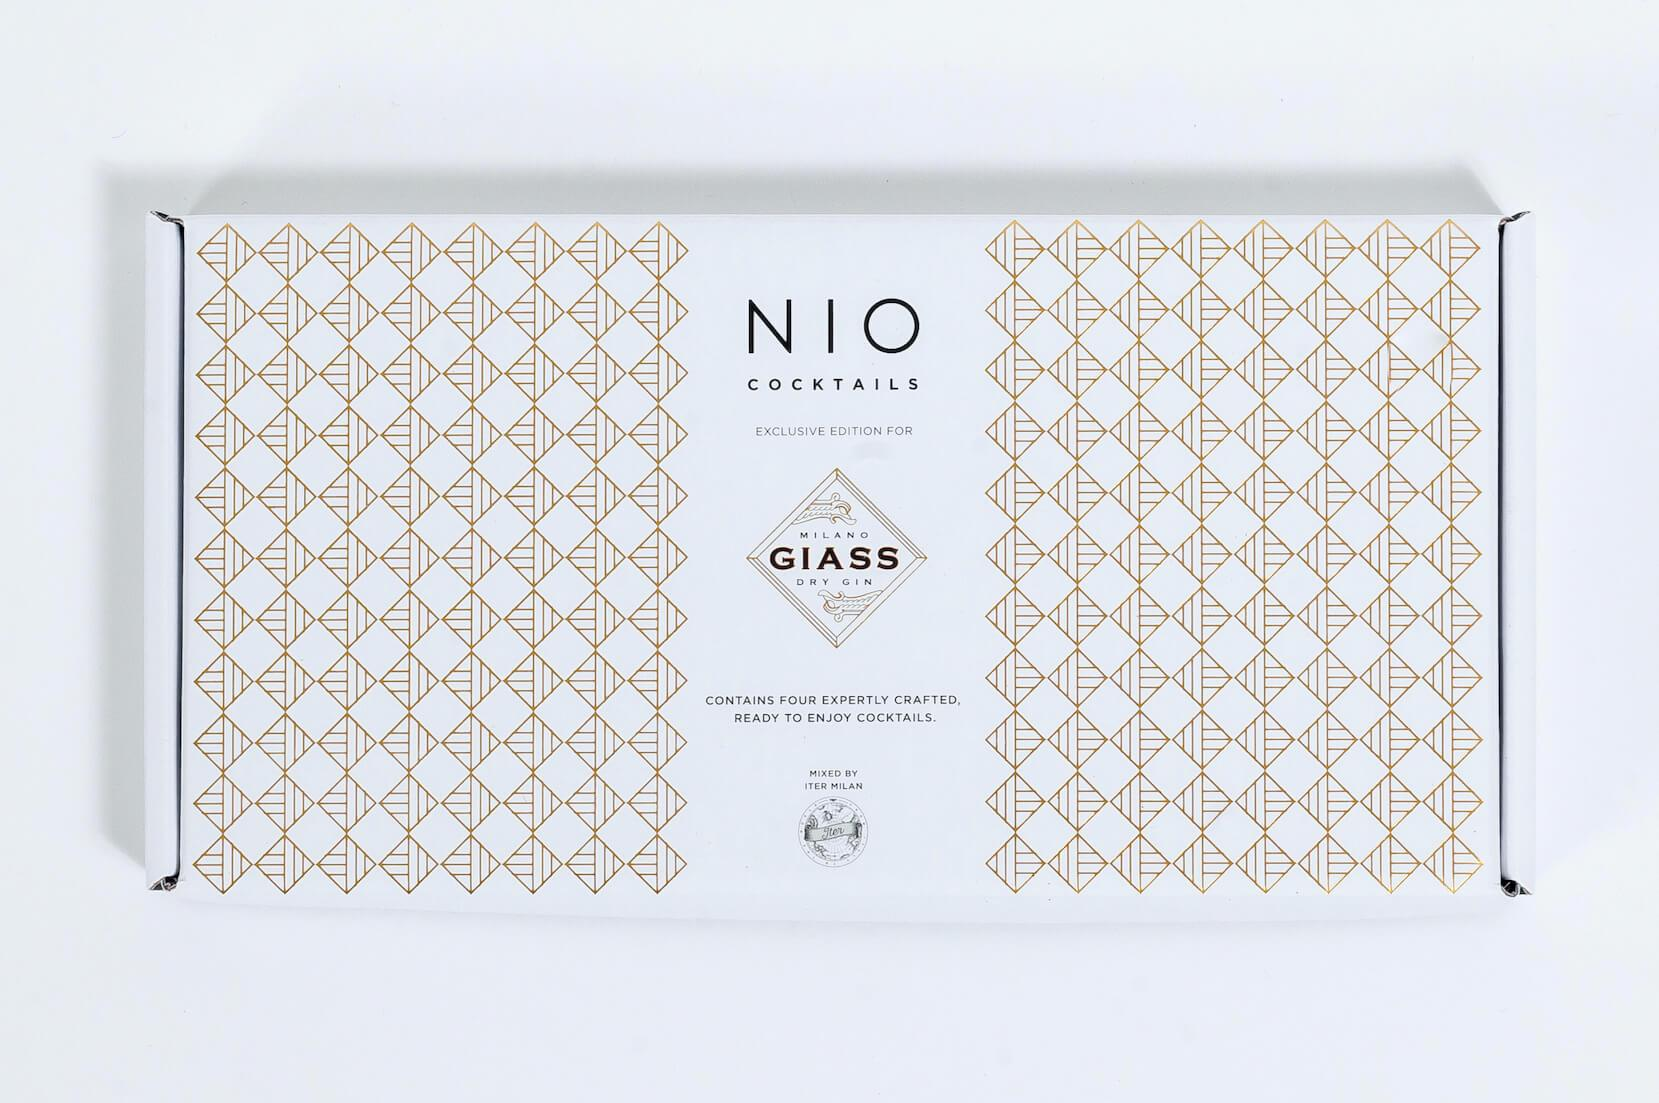 nio_cocktails_box_giass